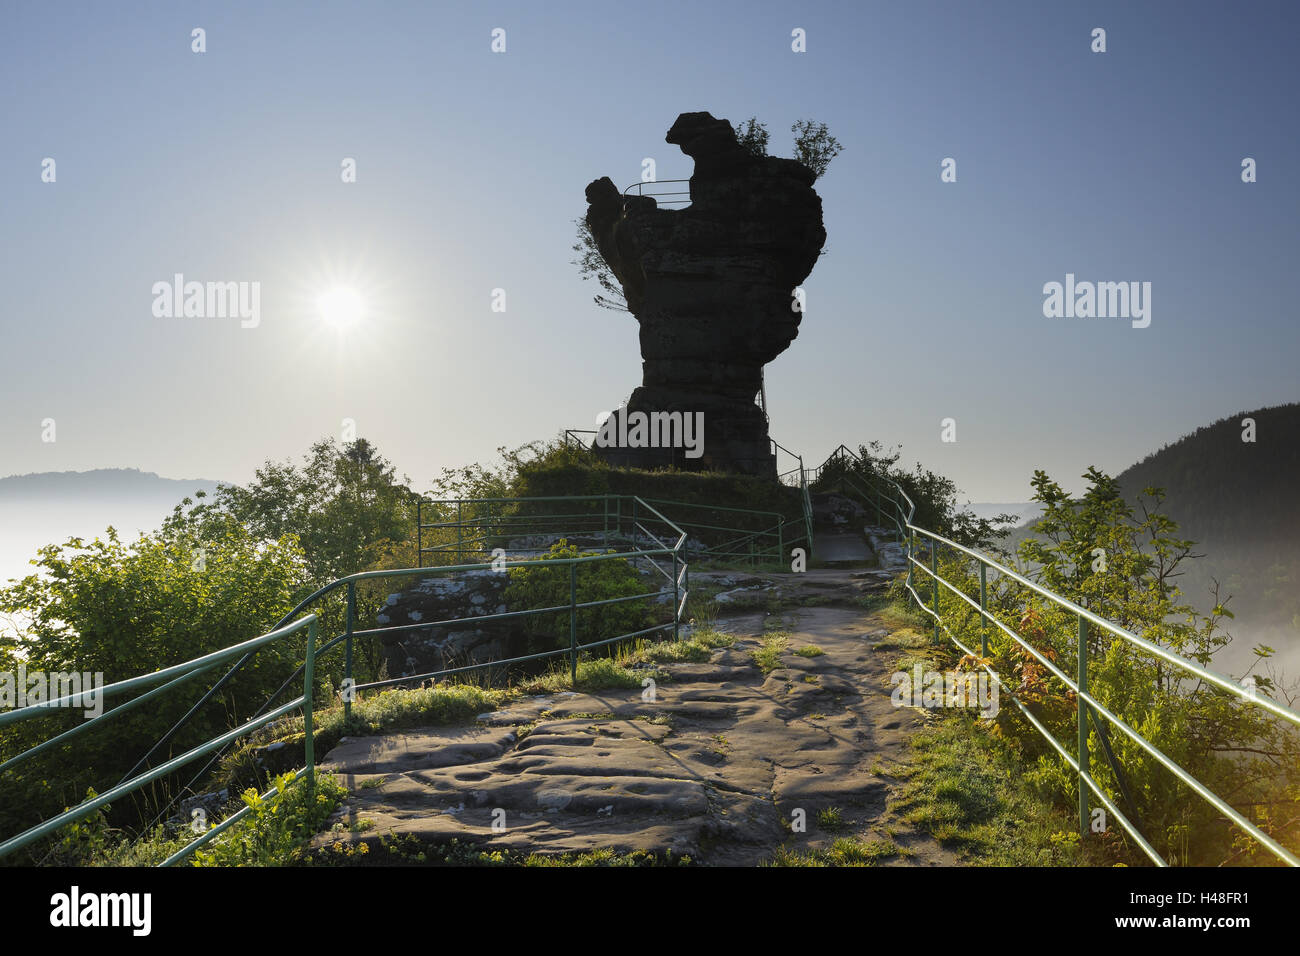 Tower of the castle ruin Drachenfels, 'molar', lookout, sun, backlight, Busenberg, Palatinate Forest, Rhineland - Stock Image